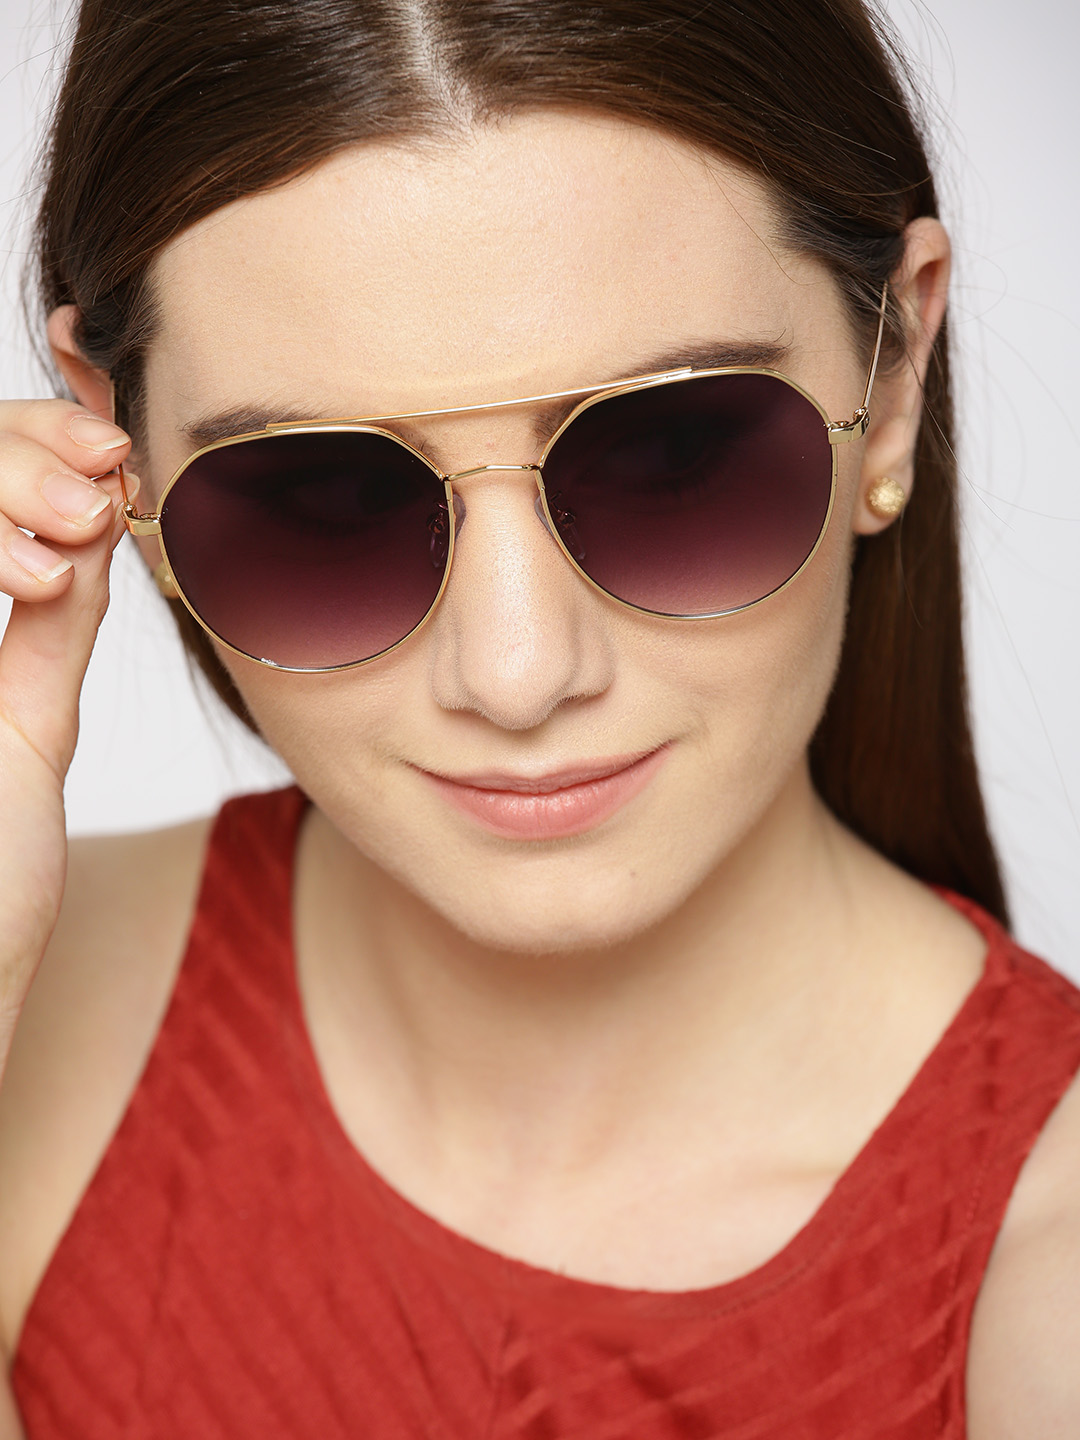 Sunglasses-Look At Her Now Sunglasses1